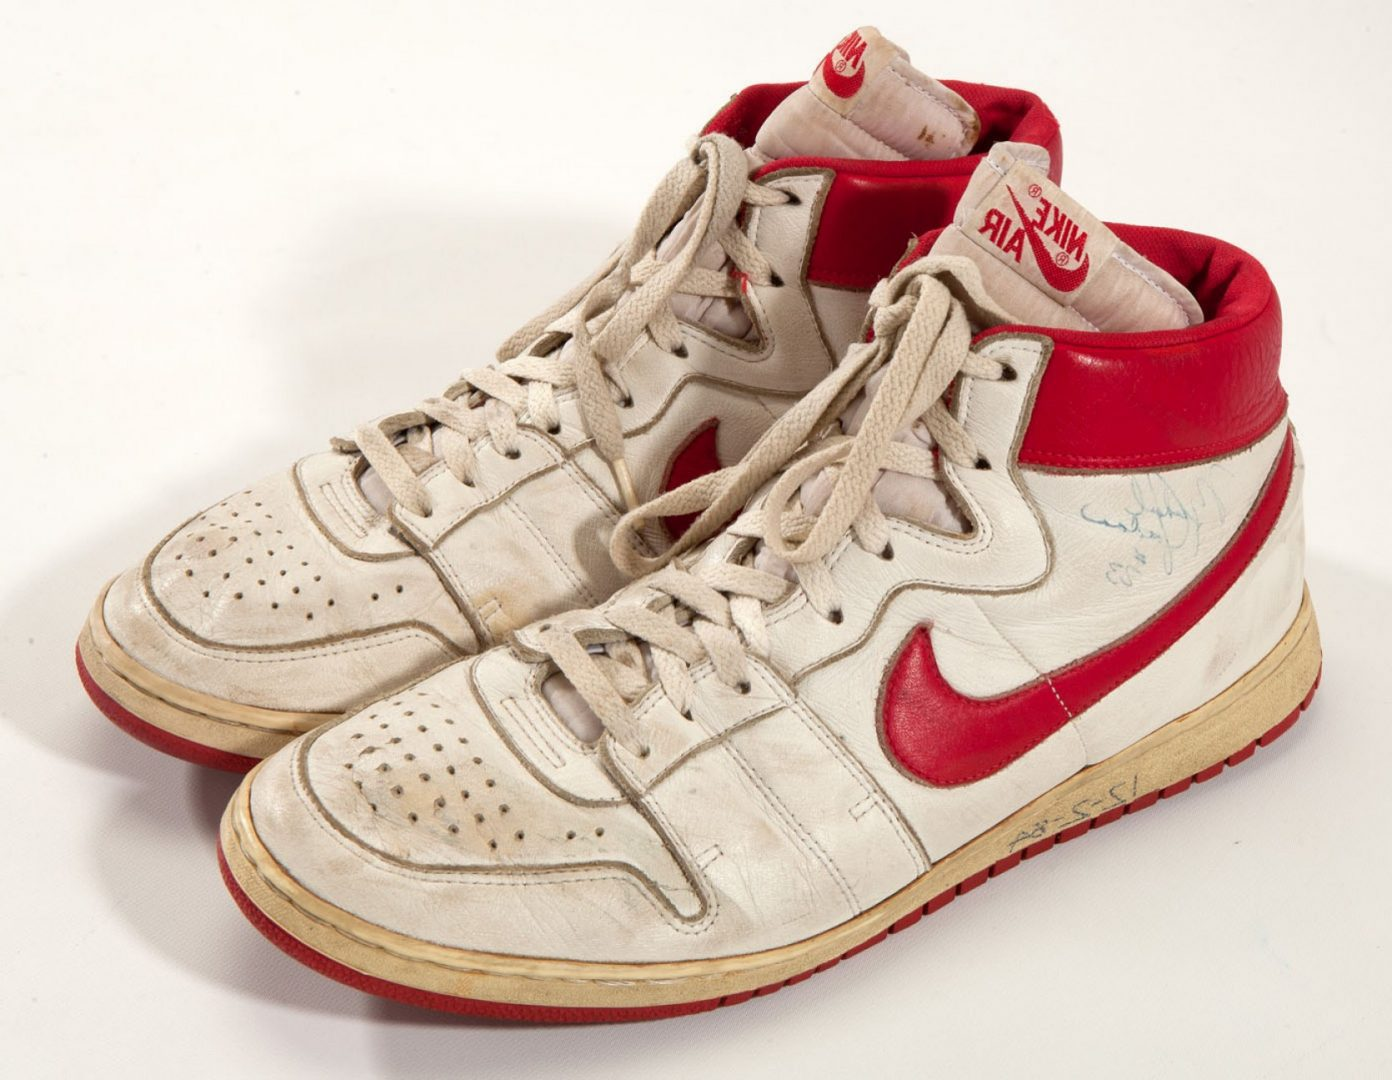 nike air ships white/red